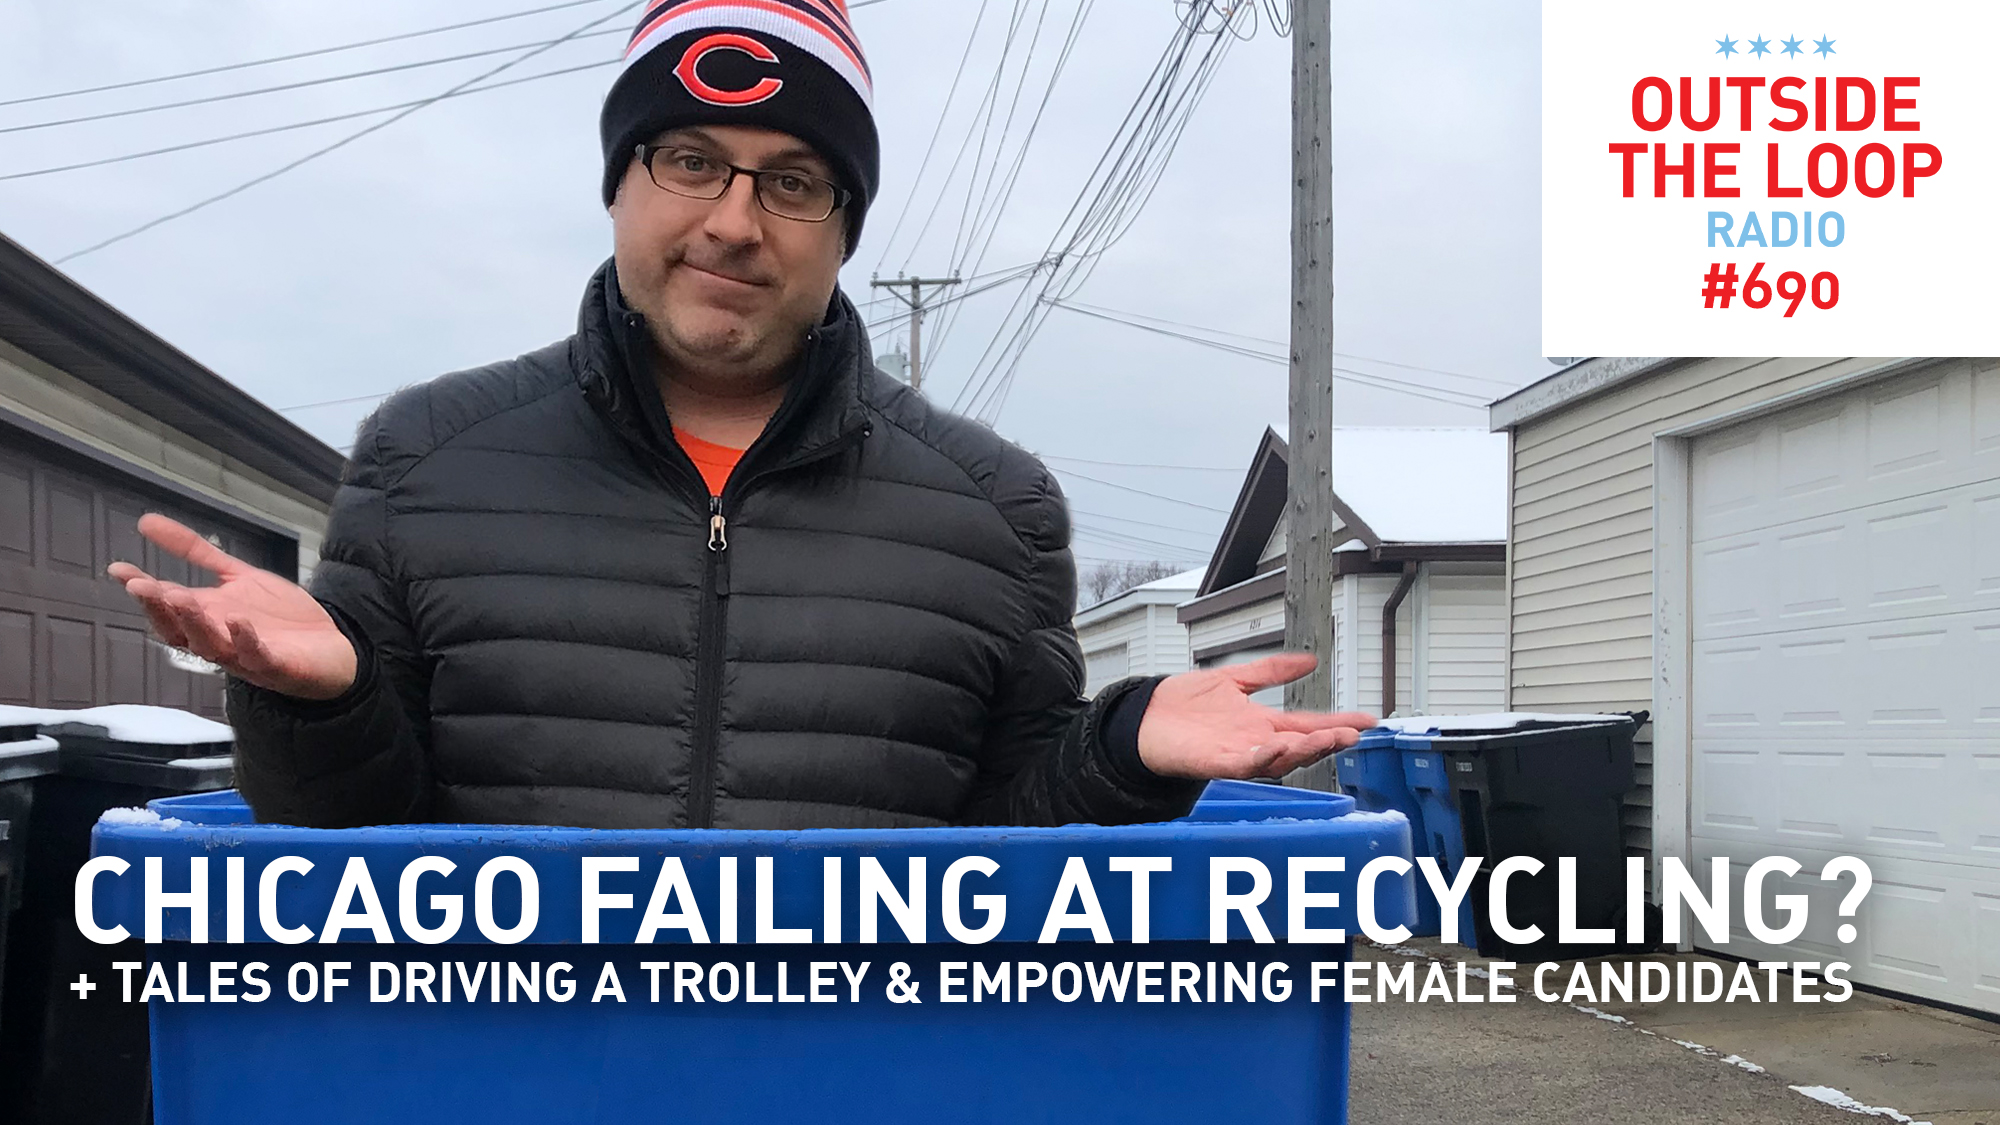 Mike Stephen ponders recycling in Chicago while standing in a blue recycling bin. That's dedication.